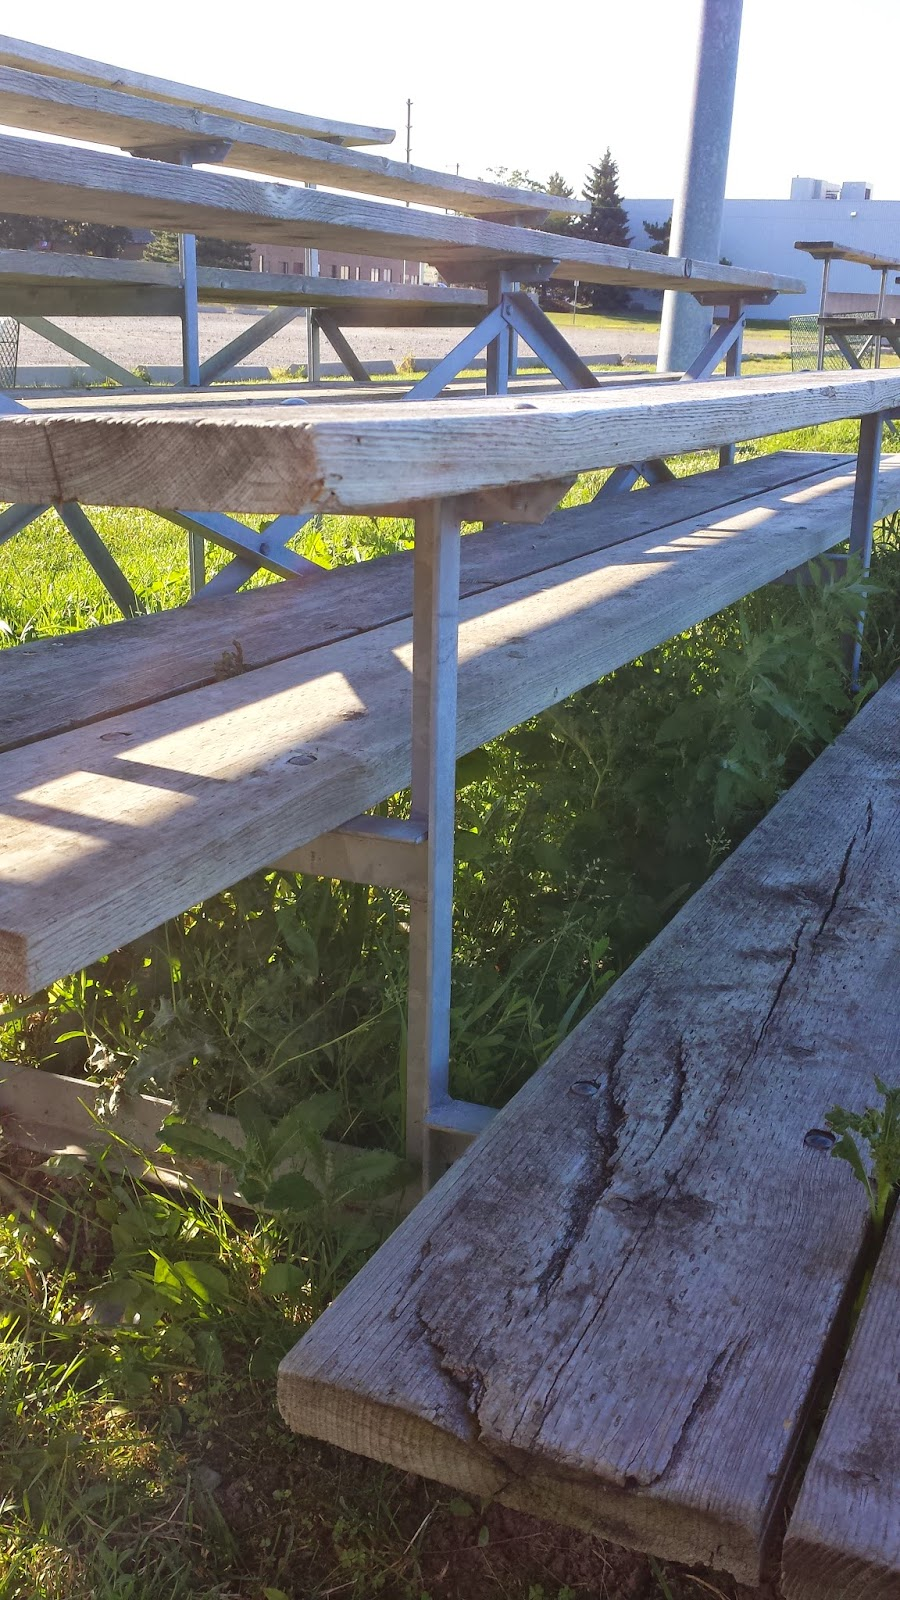 Grass and weeds growing beneath wooden and metal bleachers.